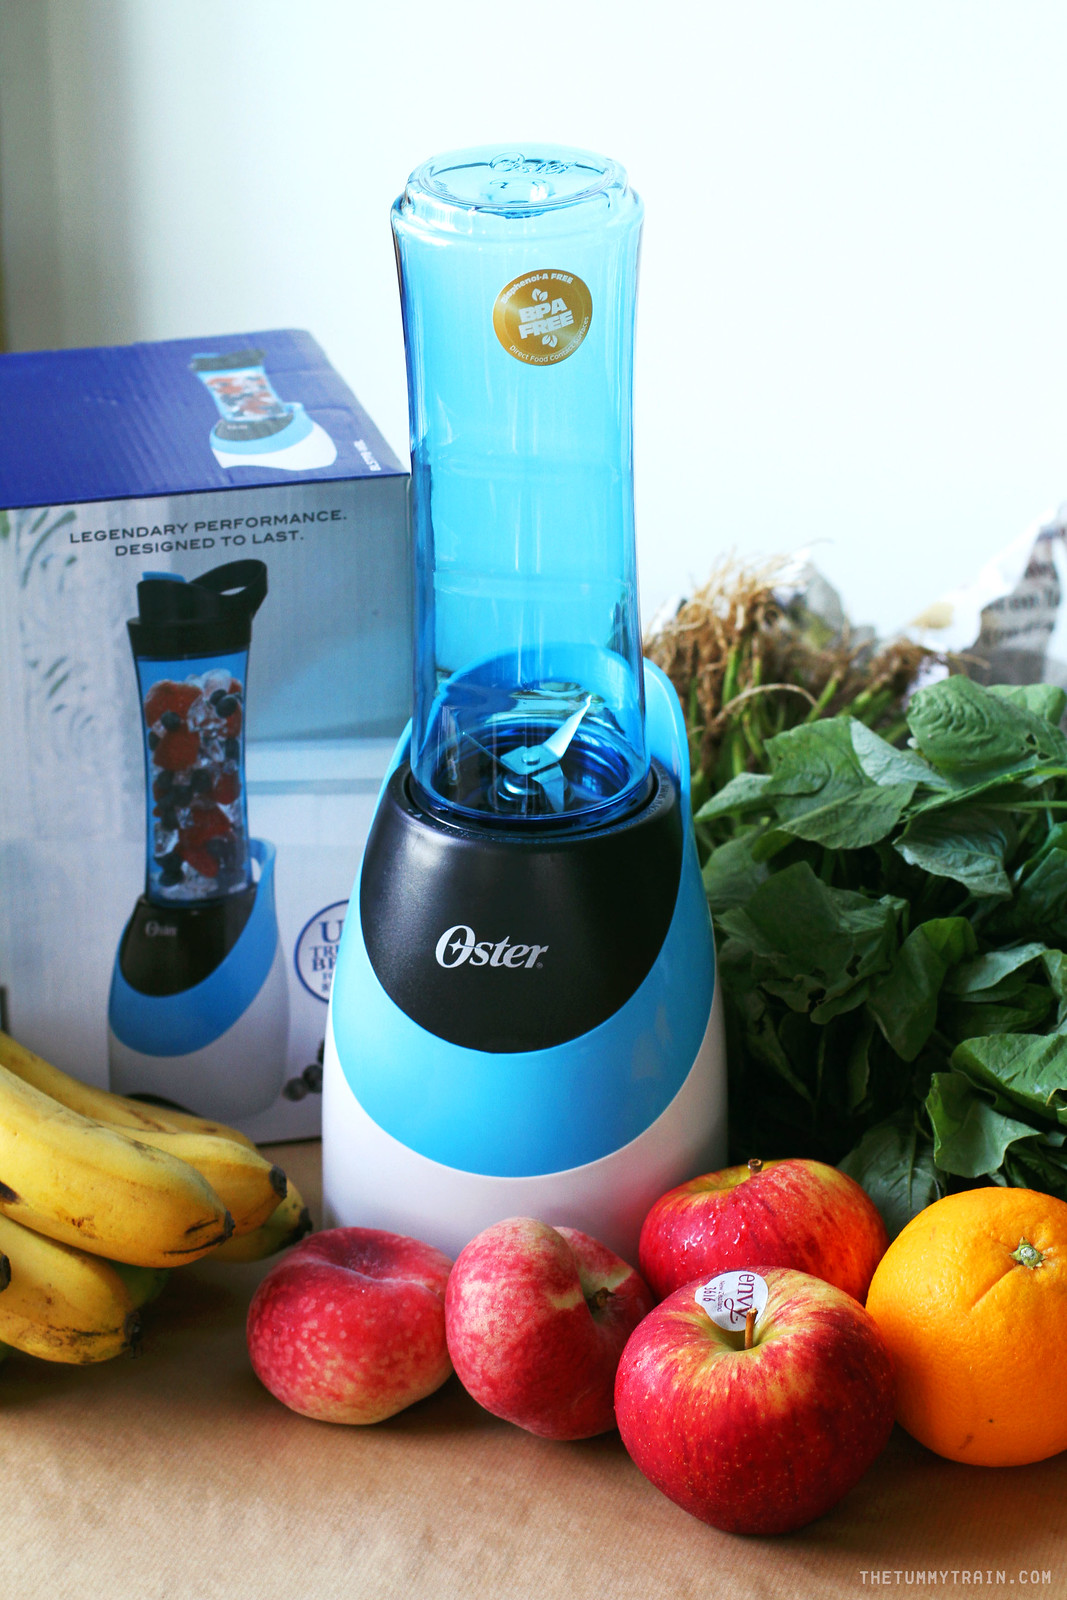 27190295212 d2cf7b8060 h - A review on the Oster MyBlend Personal Blender + Giveaway!